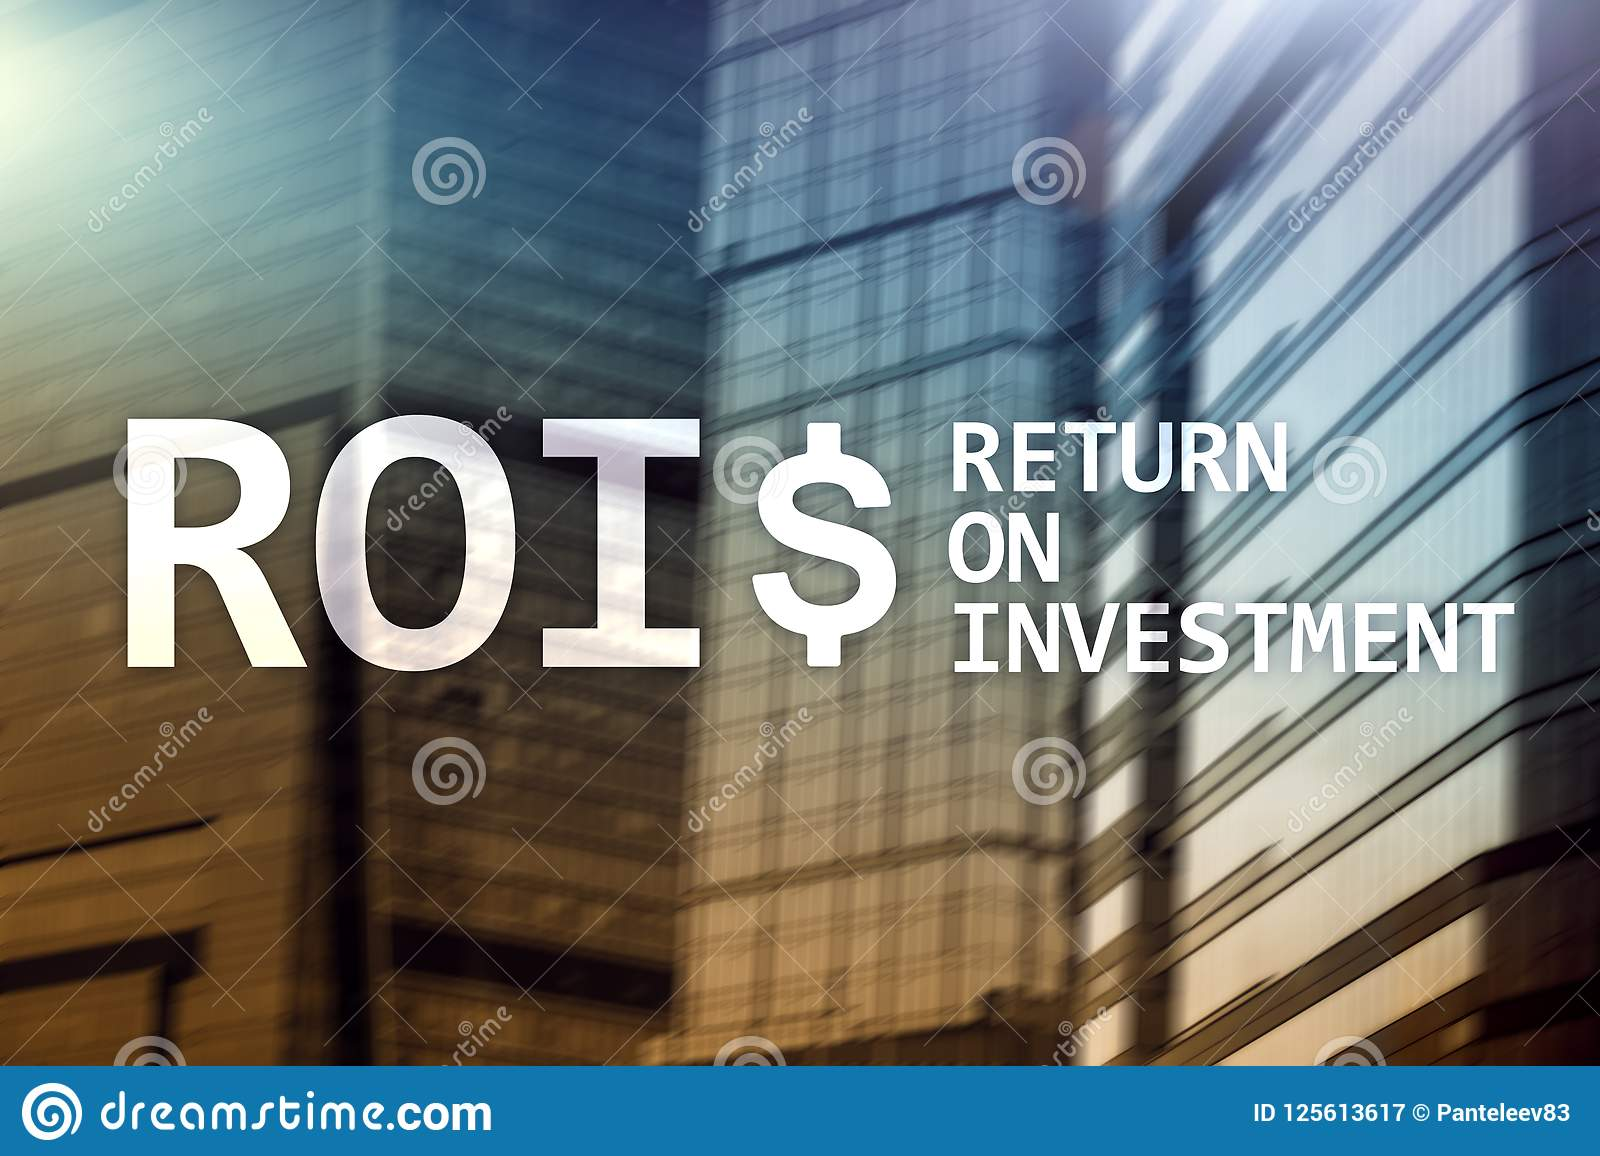 ROI - Return on investment, Financial market and stock trading concept